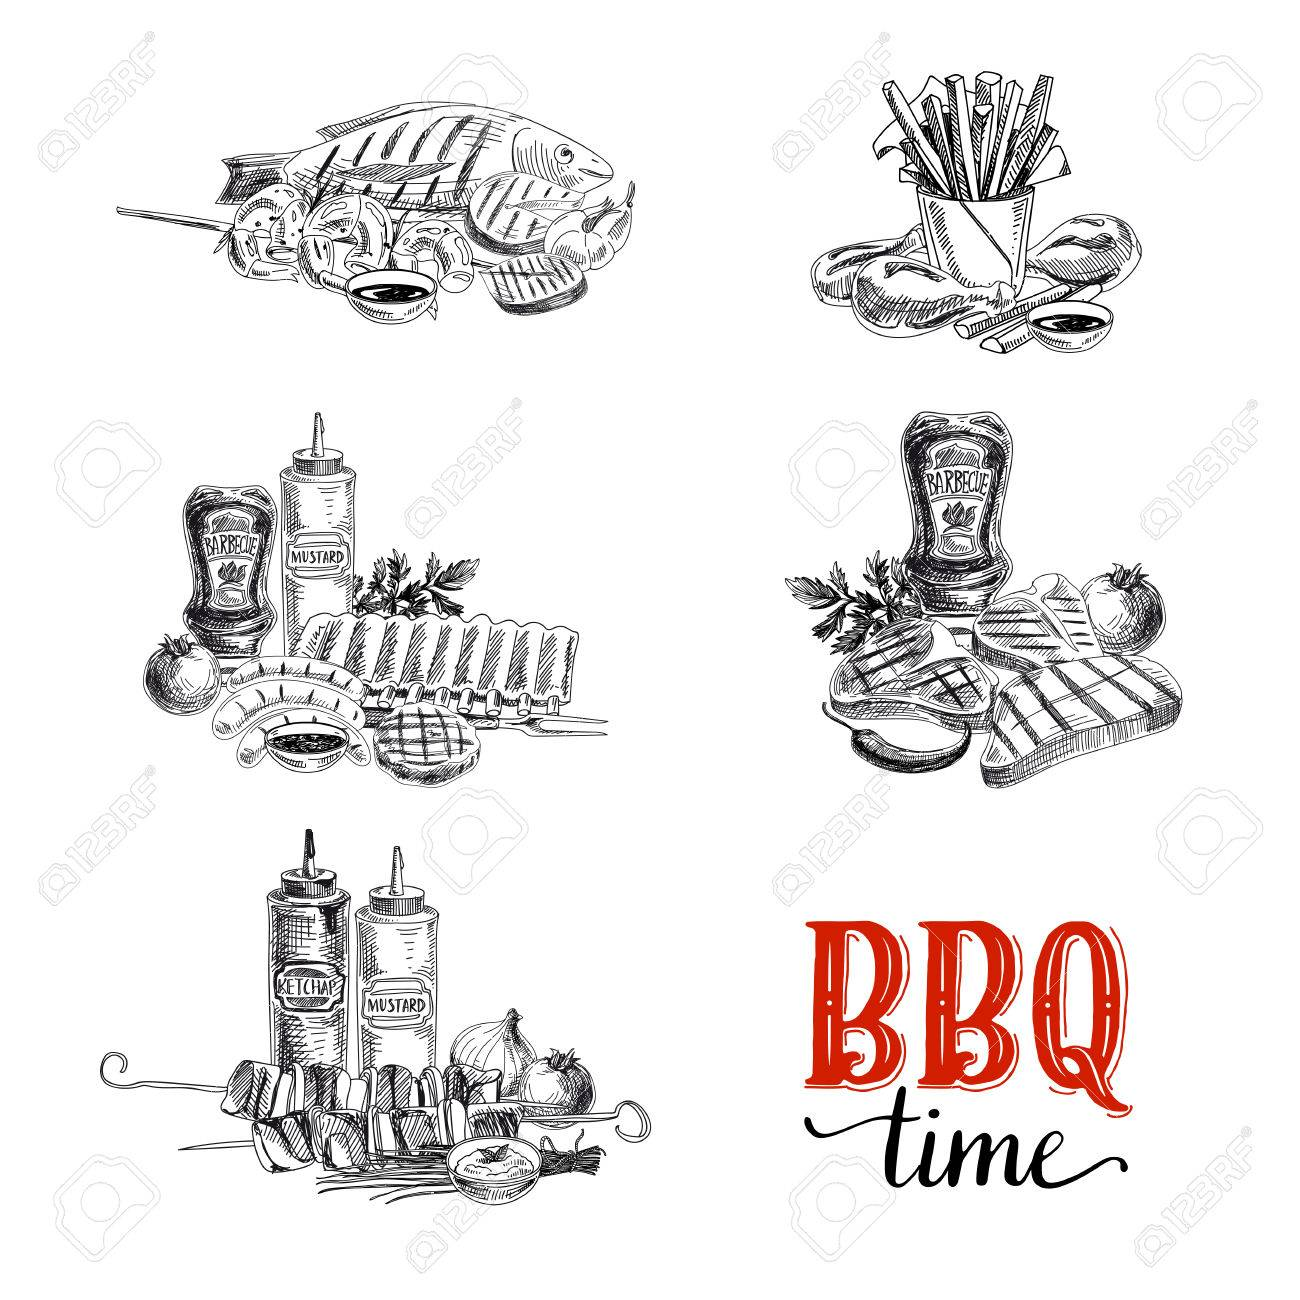 Vector set of barbecue and grill elements. Vector illustration in sketch style. Hand drawn design elements. - 49425279